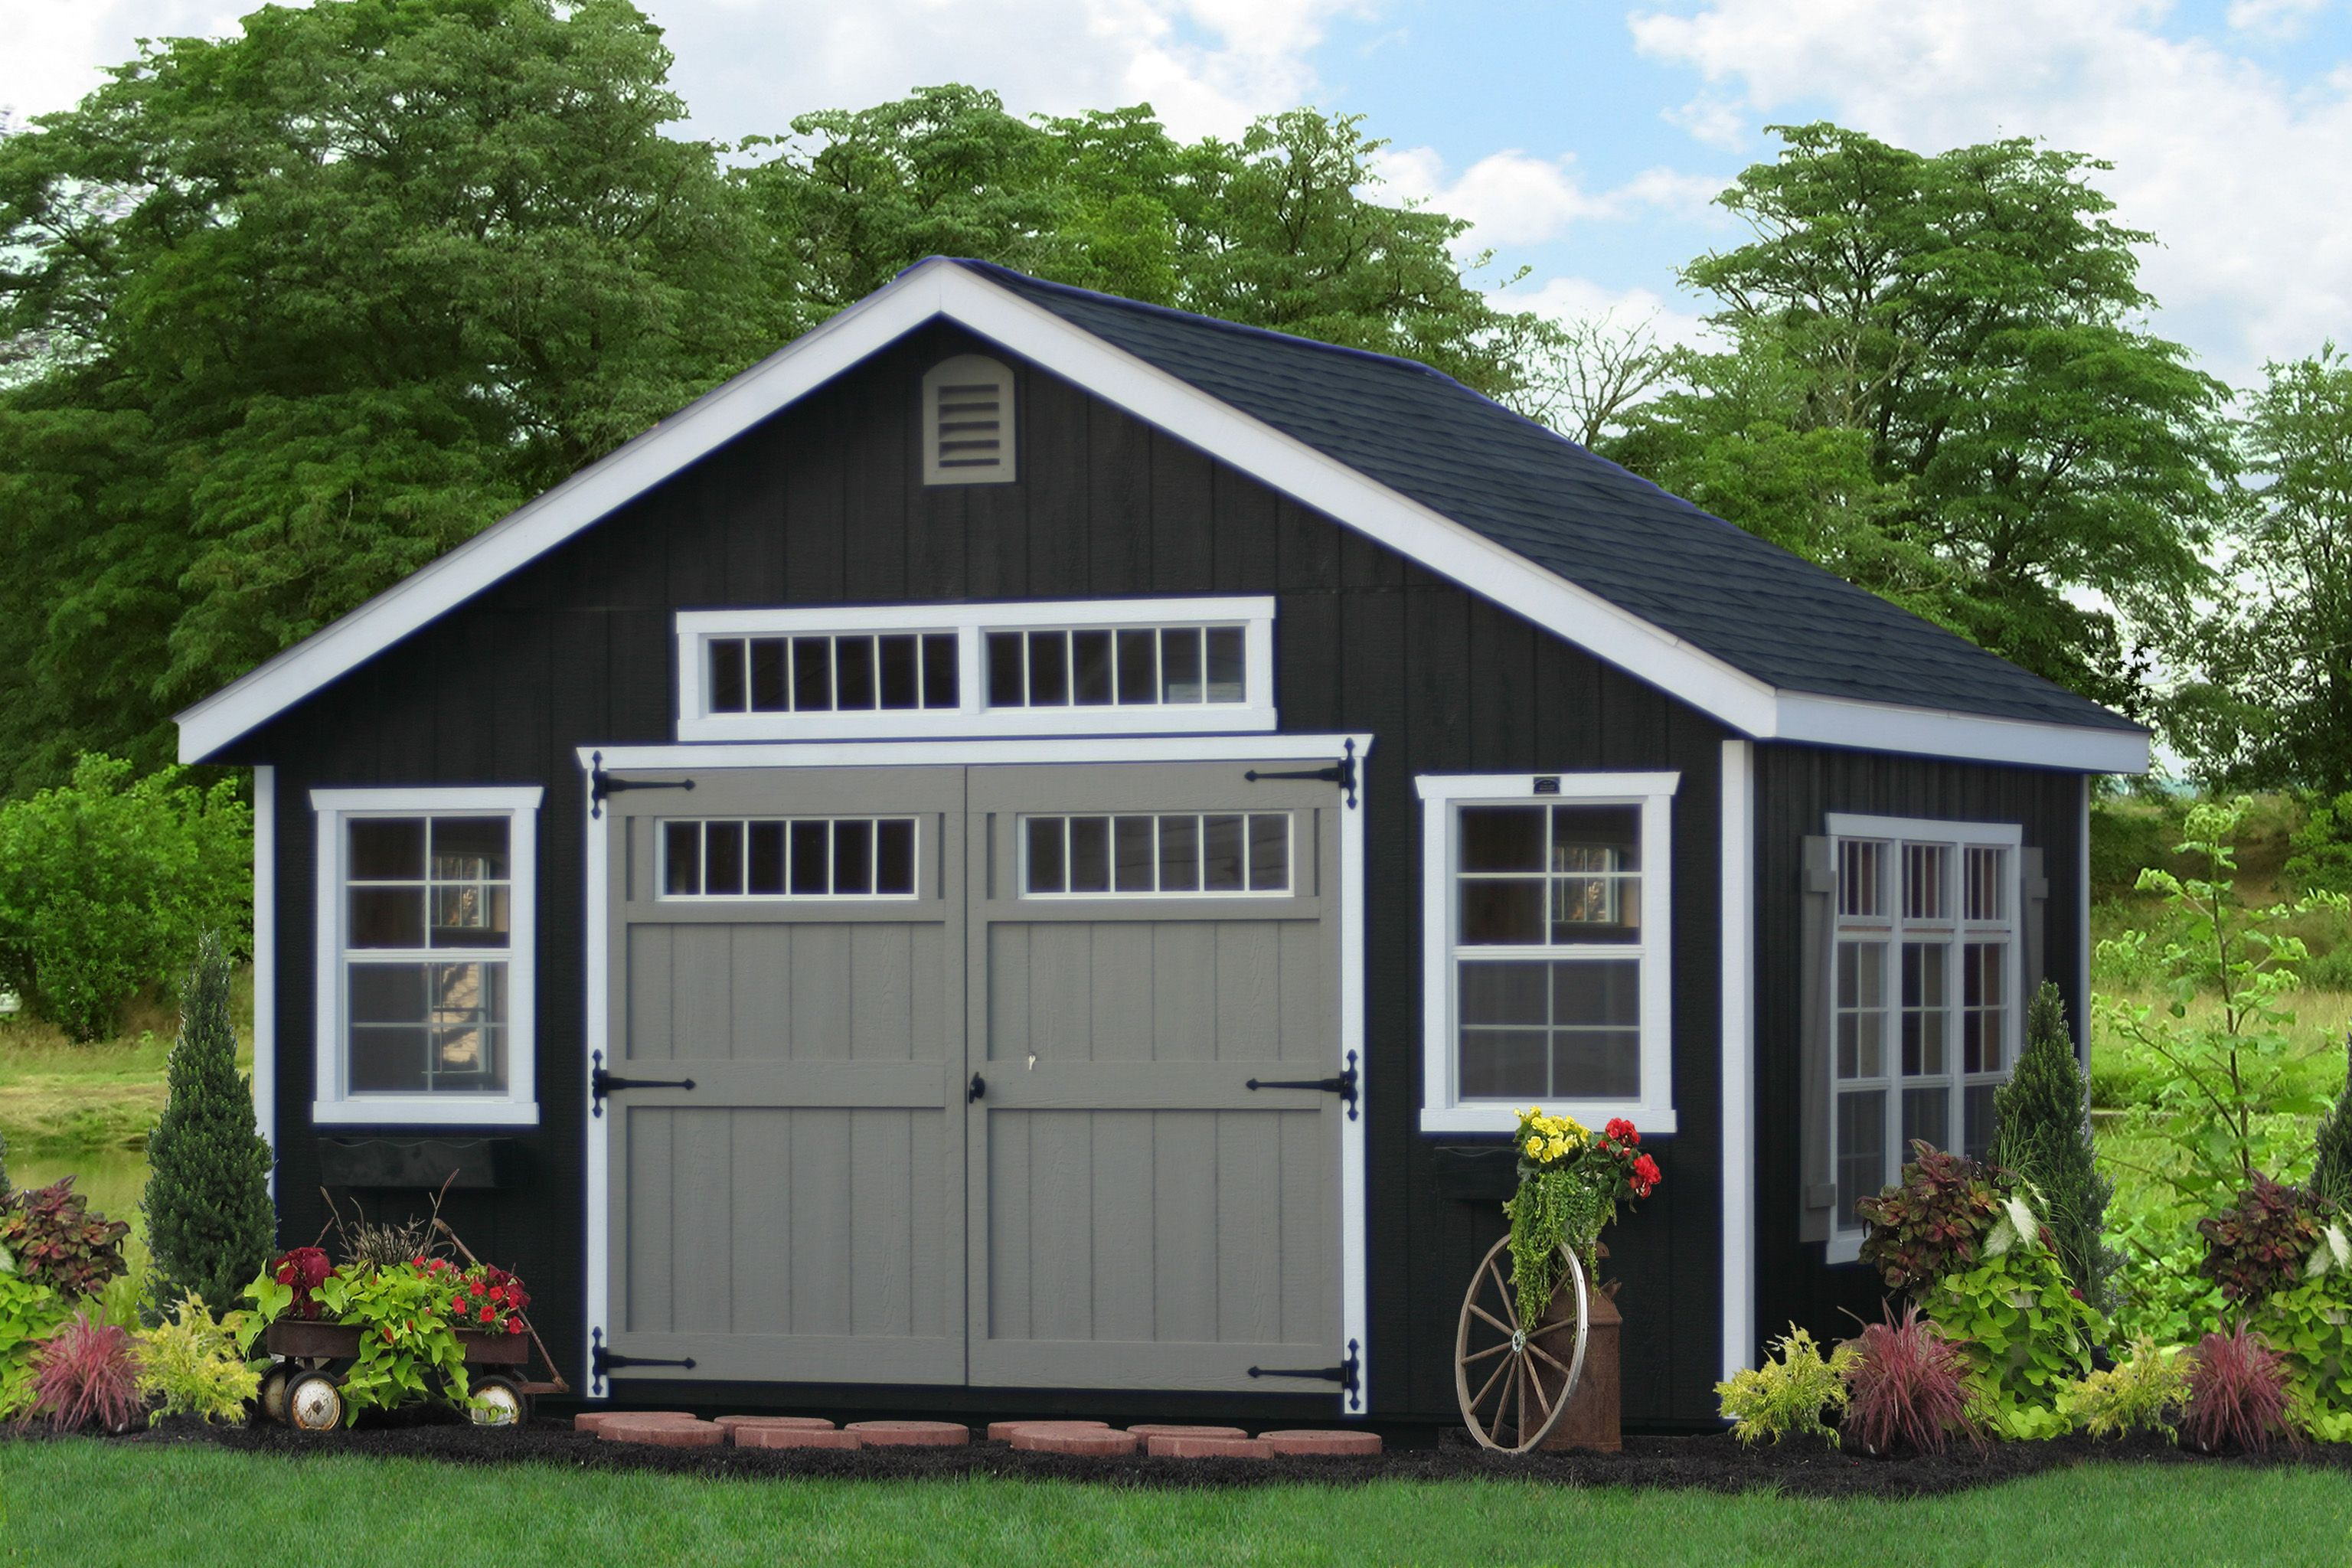 Charming Classic Wooden Storage Sheds For PA, NJ, NY, CT, DE, MD